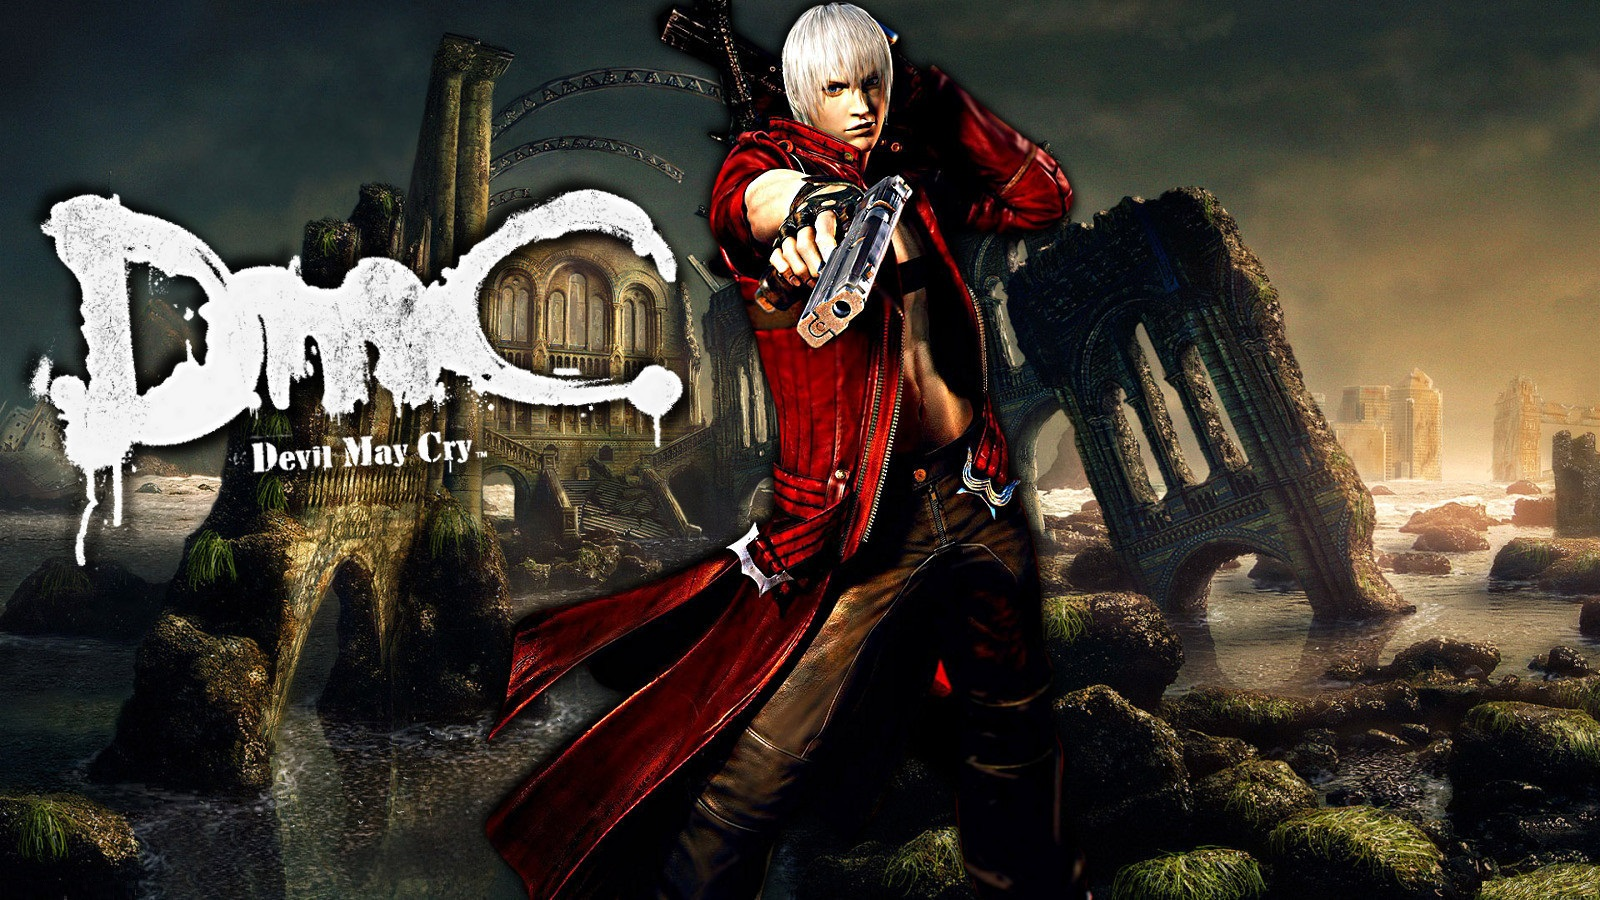 Devil May Cry (Dante)